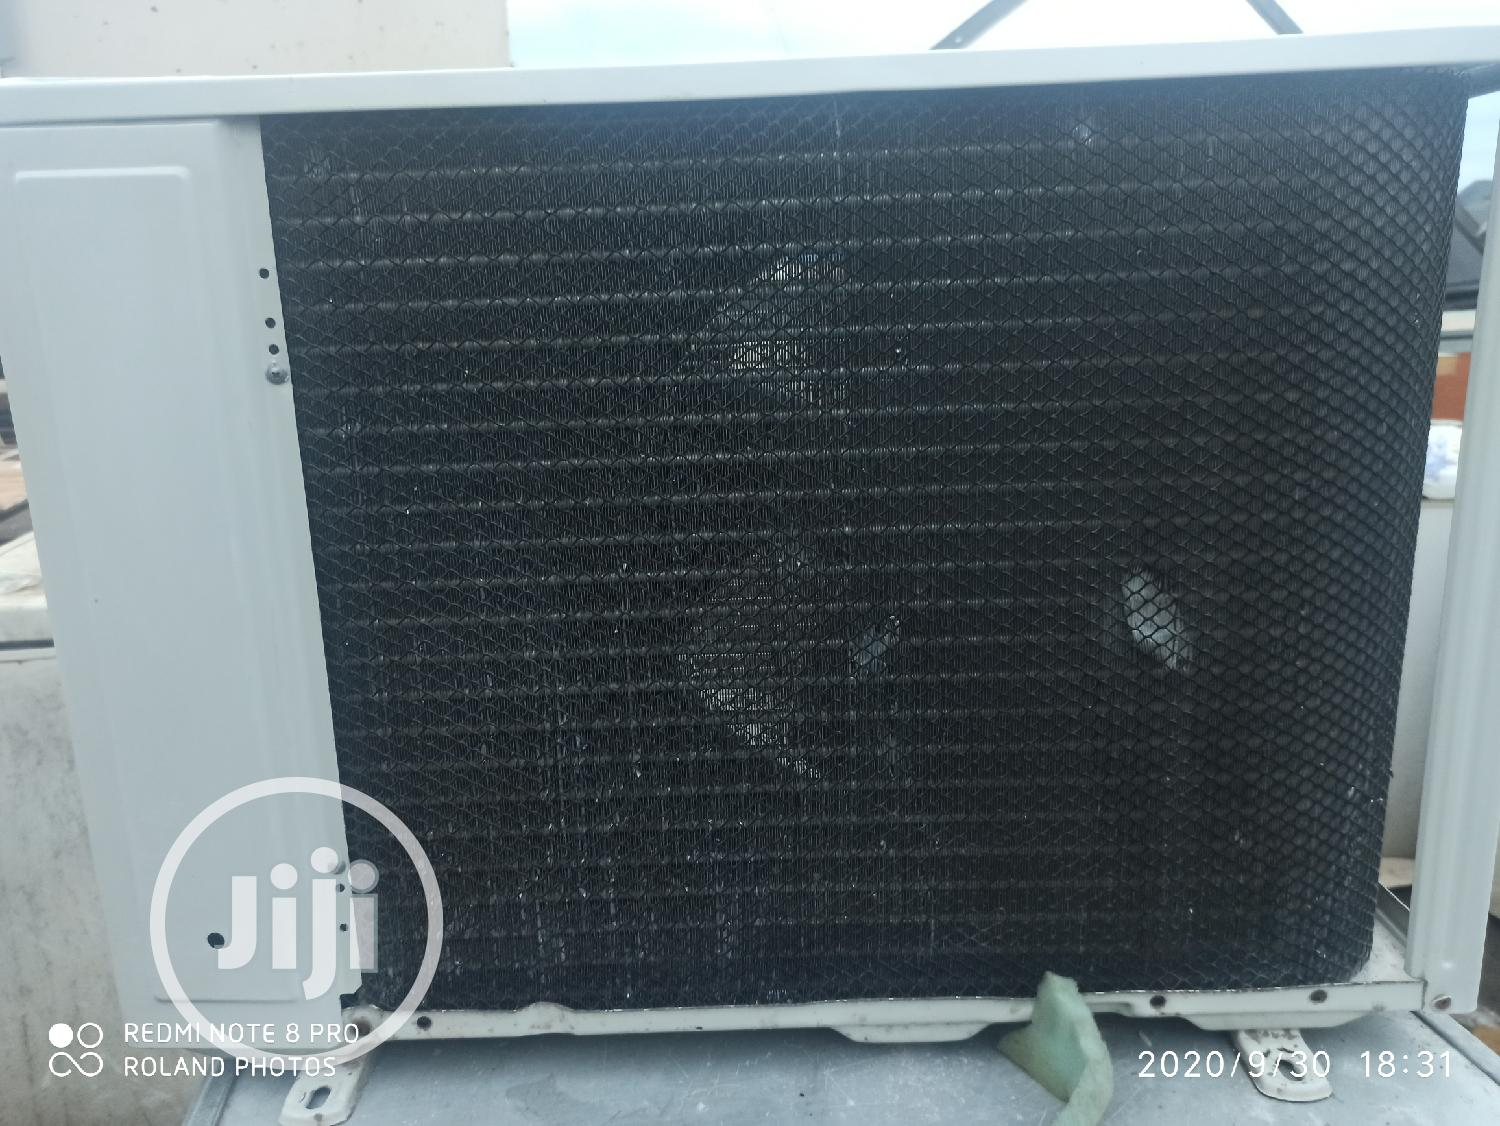 Archive: 1.5 Hp A.C Working Perfectly With No Issues.